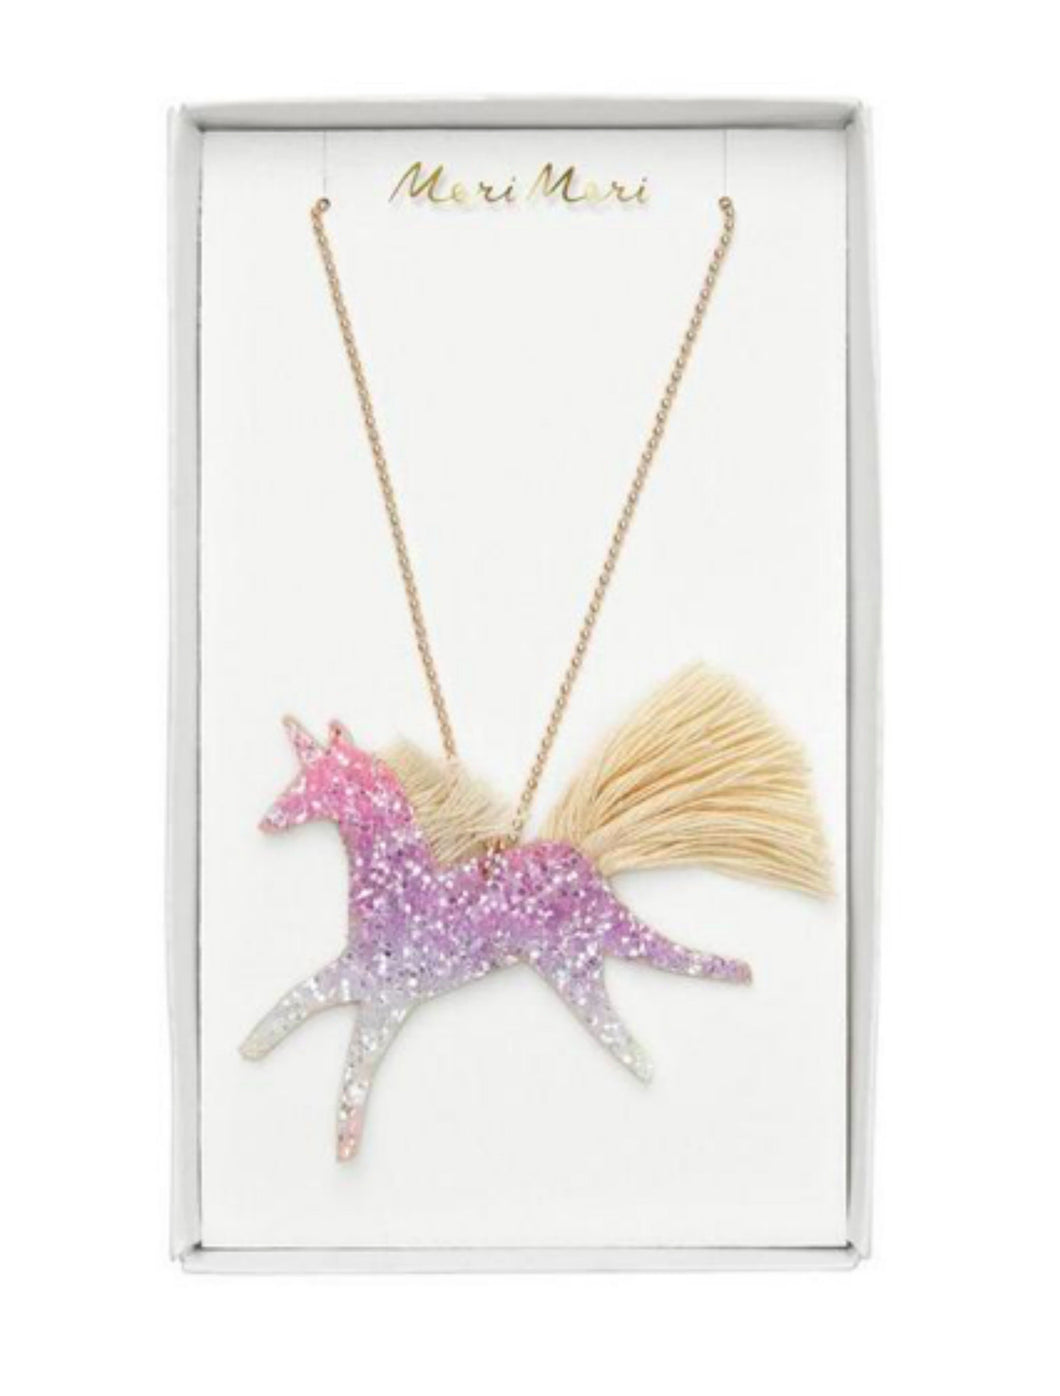 Meri Meri Glitter Unicorn Necklace - Honeypiekids.com